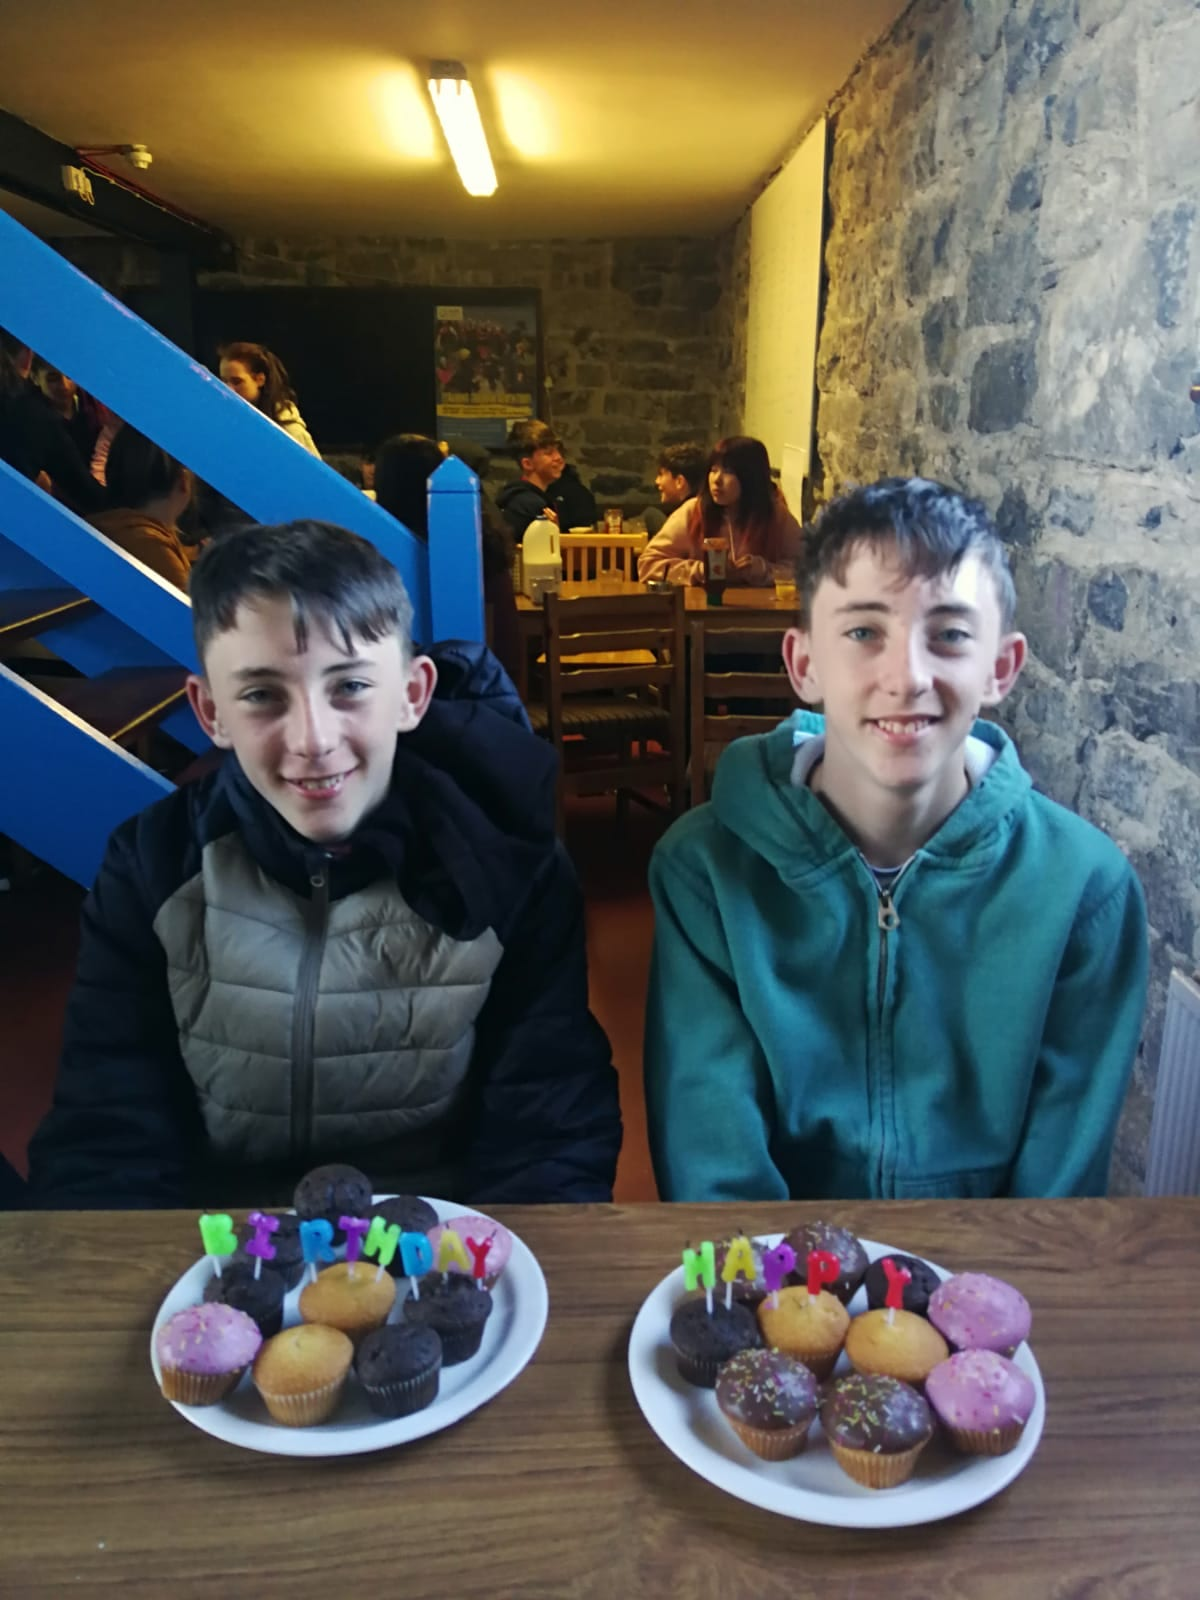 Cathal and Josh Daly enjoying a birthday celebration while on an overnight trip to the Burren